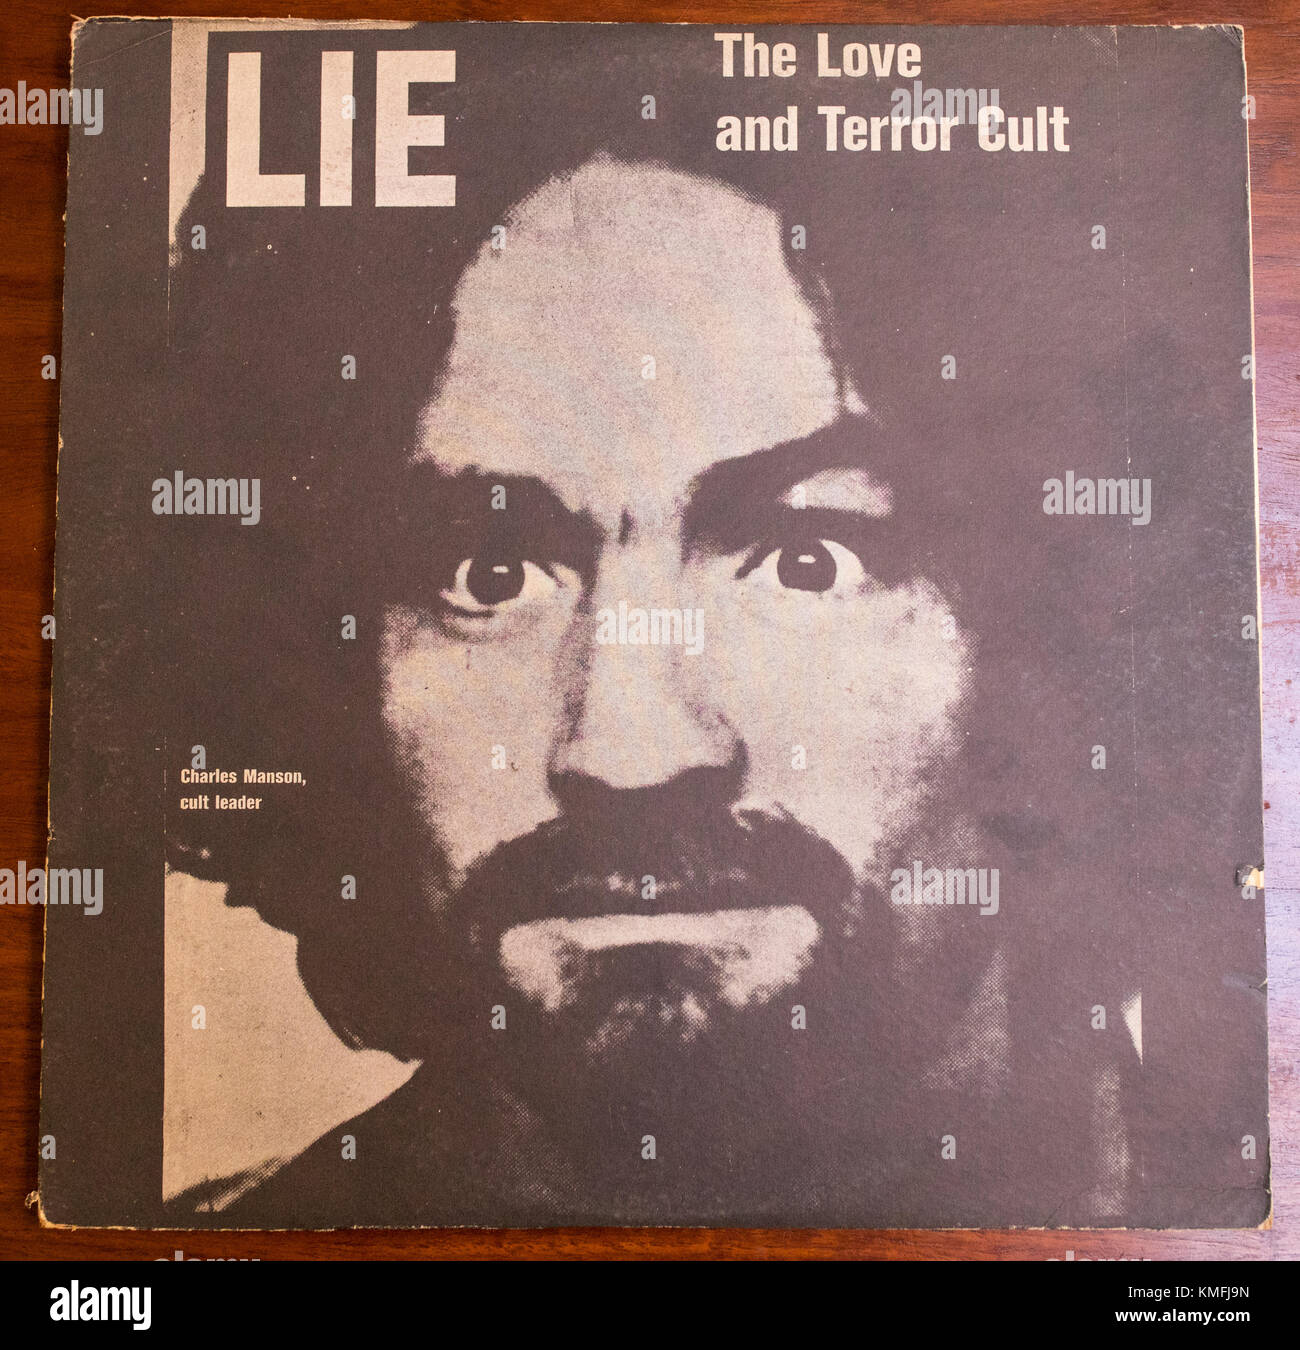 a biography of charles manson a convicted murderer By followers of cult leader charles manson on the night of august 8–9, 1969, in los angeles two more people were killed on august 10 after two highly publicized trials, manson and four of his followers were convicted of all the murders in 1971.